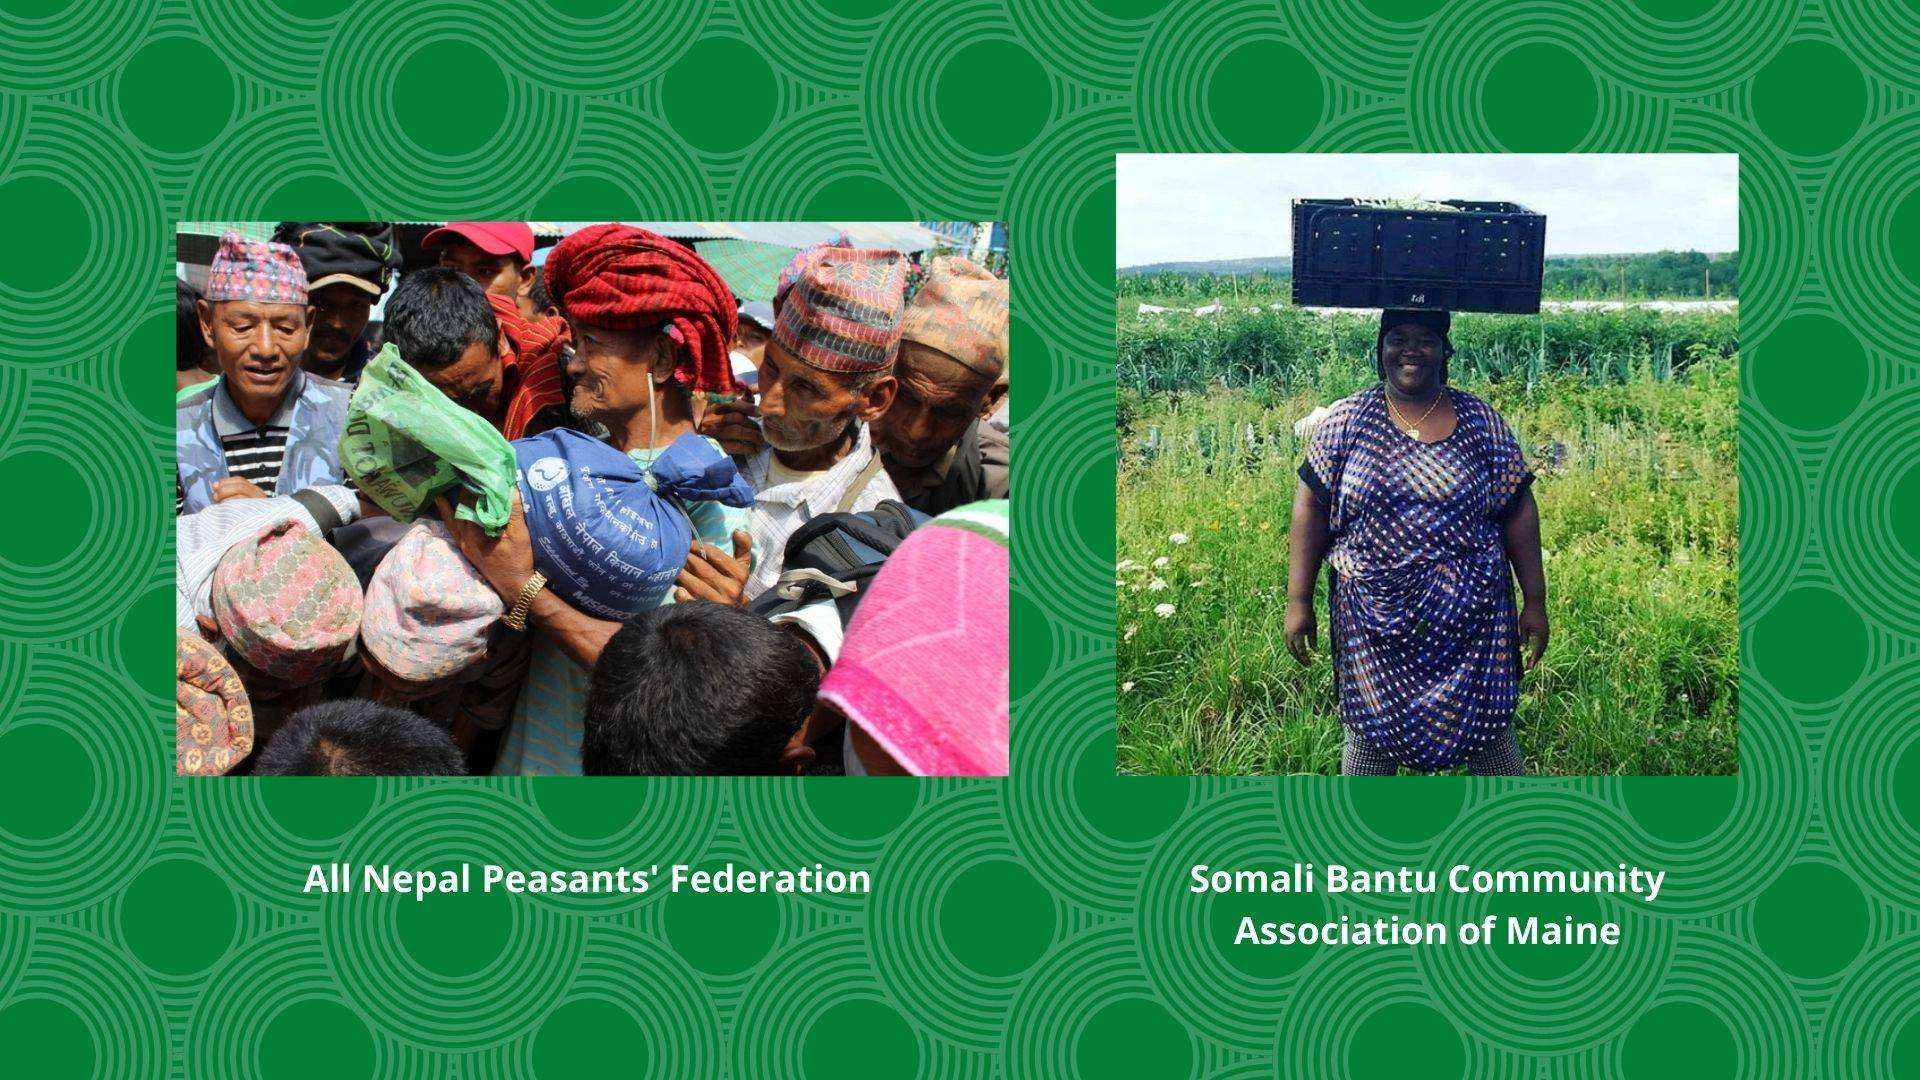 Somali Bantu Community Association & All Nepal Peasants' Federation Receive 12th Annual Food Sovereignty Prize in 2020